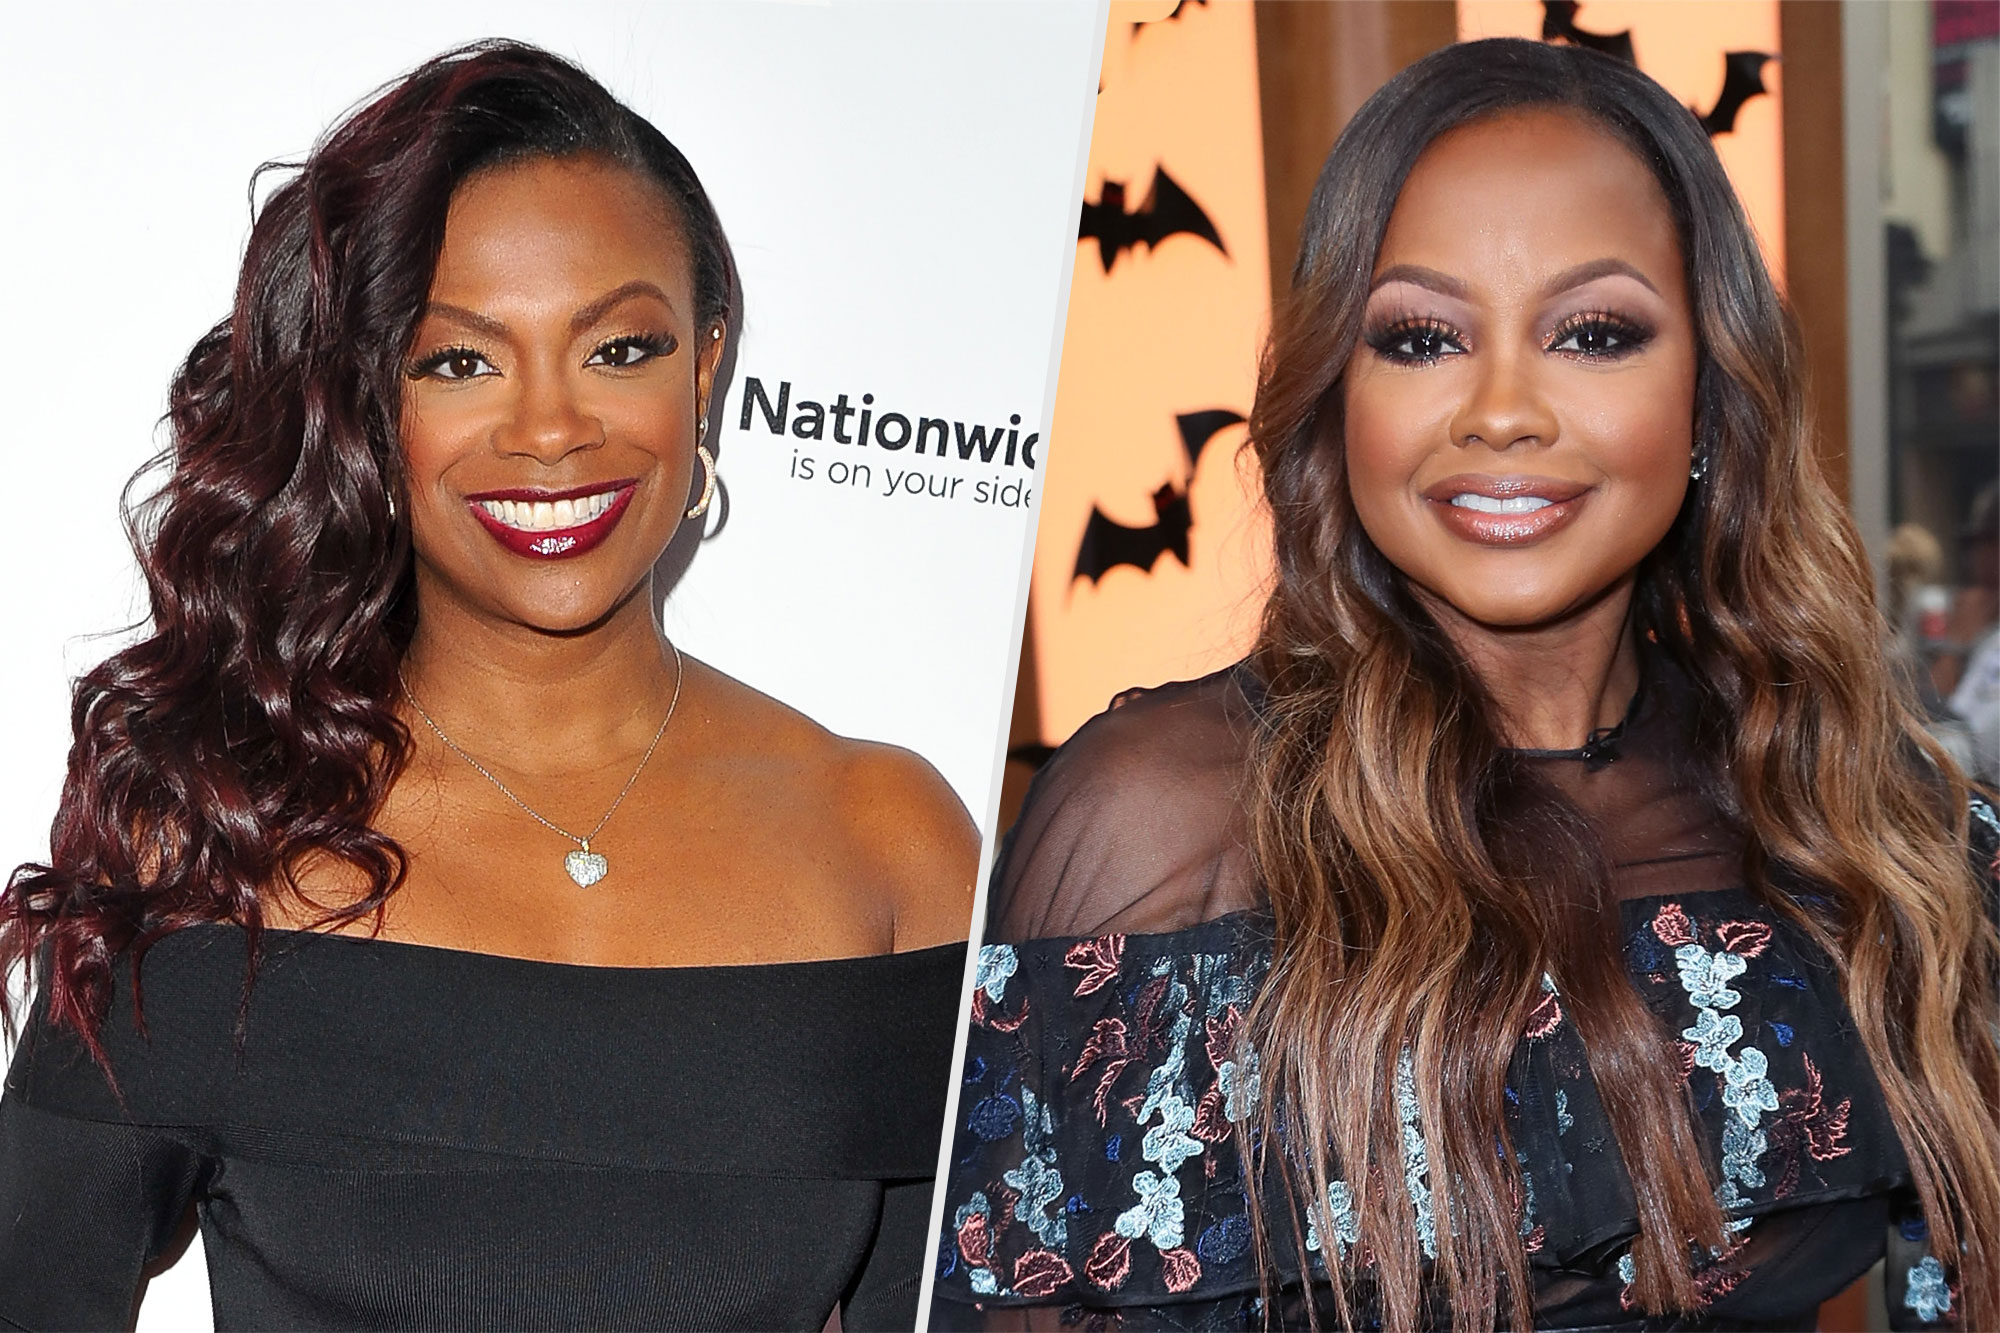 Phaedra Parks and Kandi Burruss